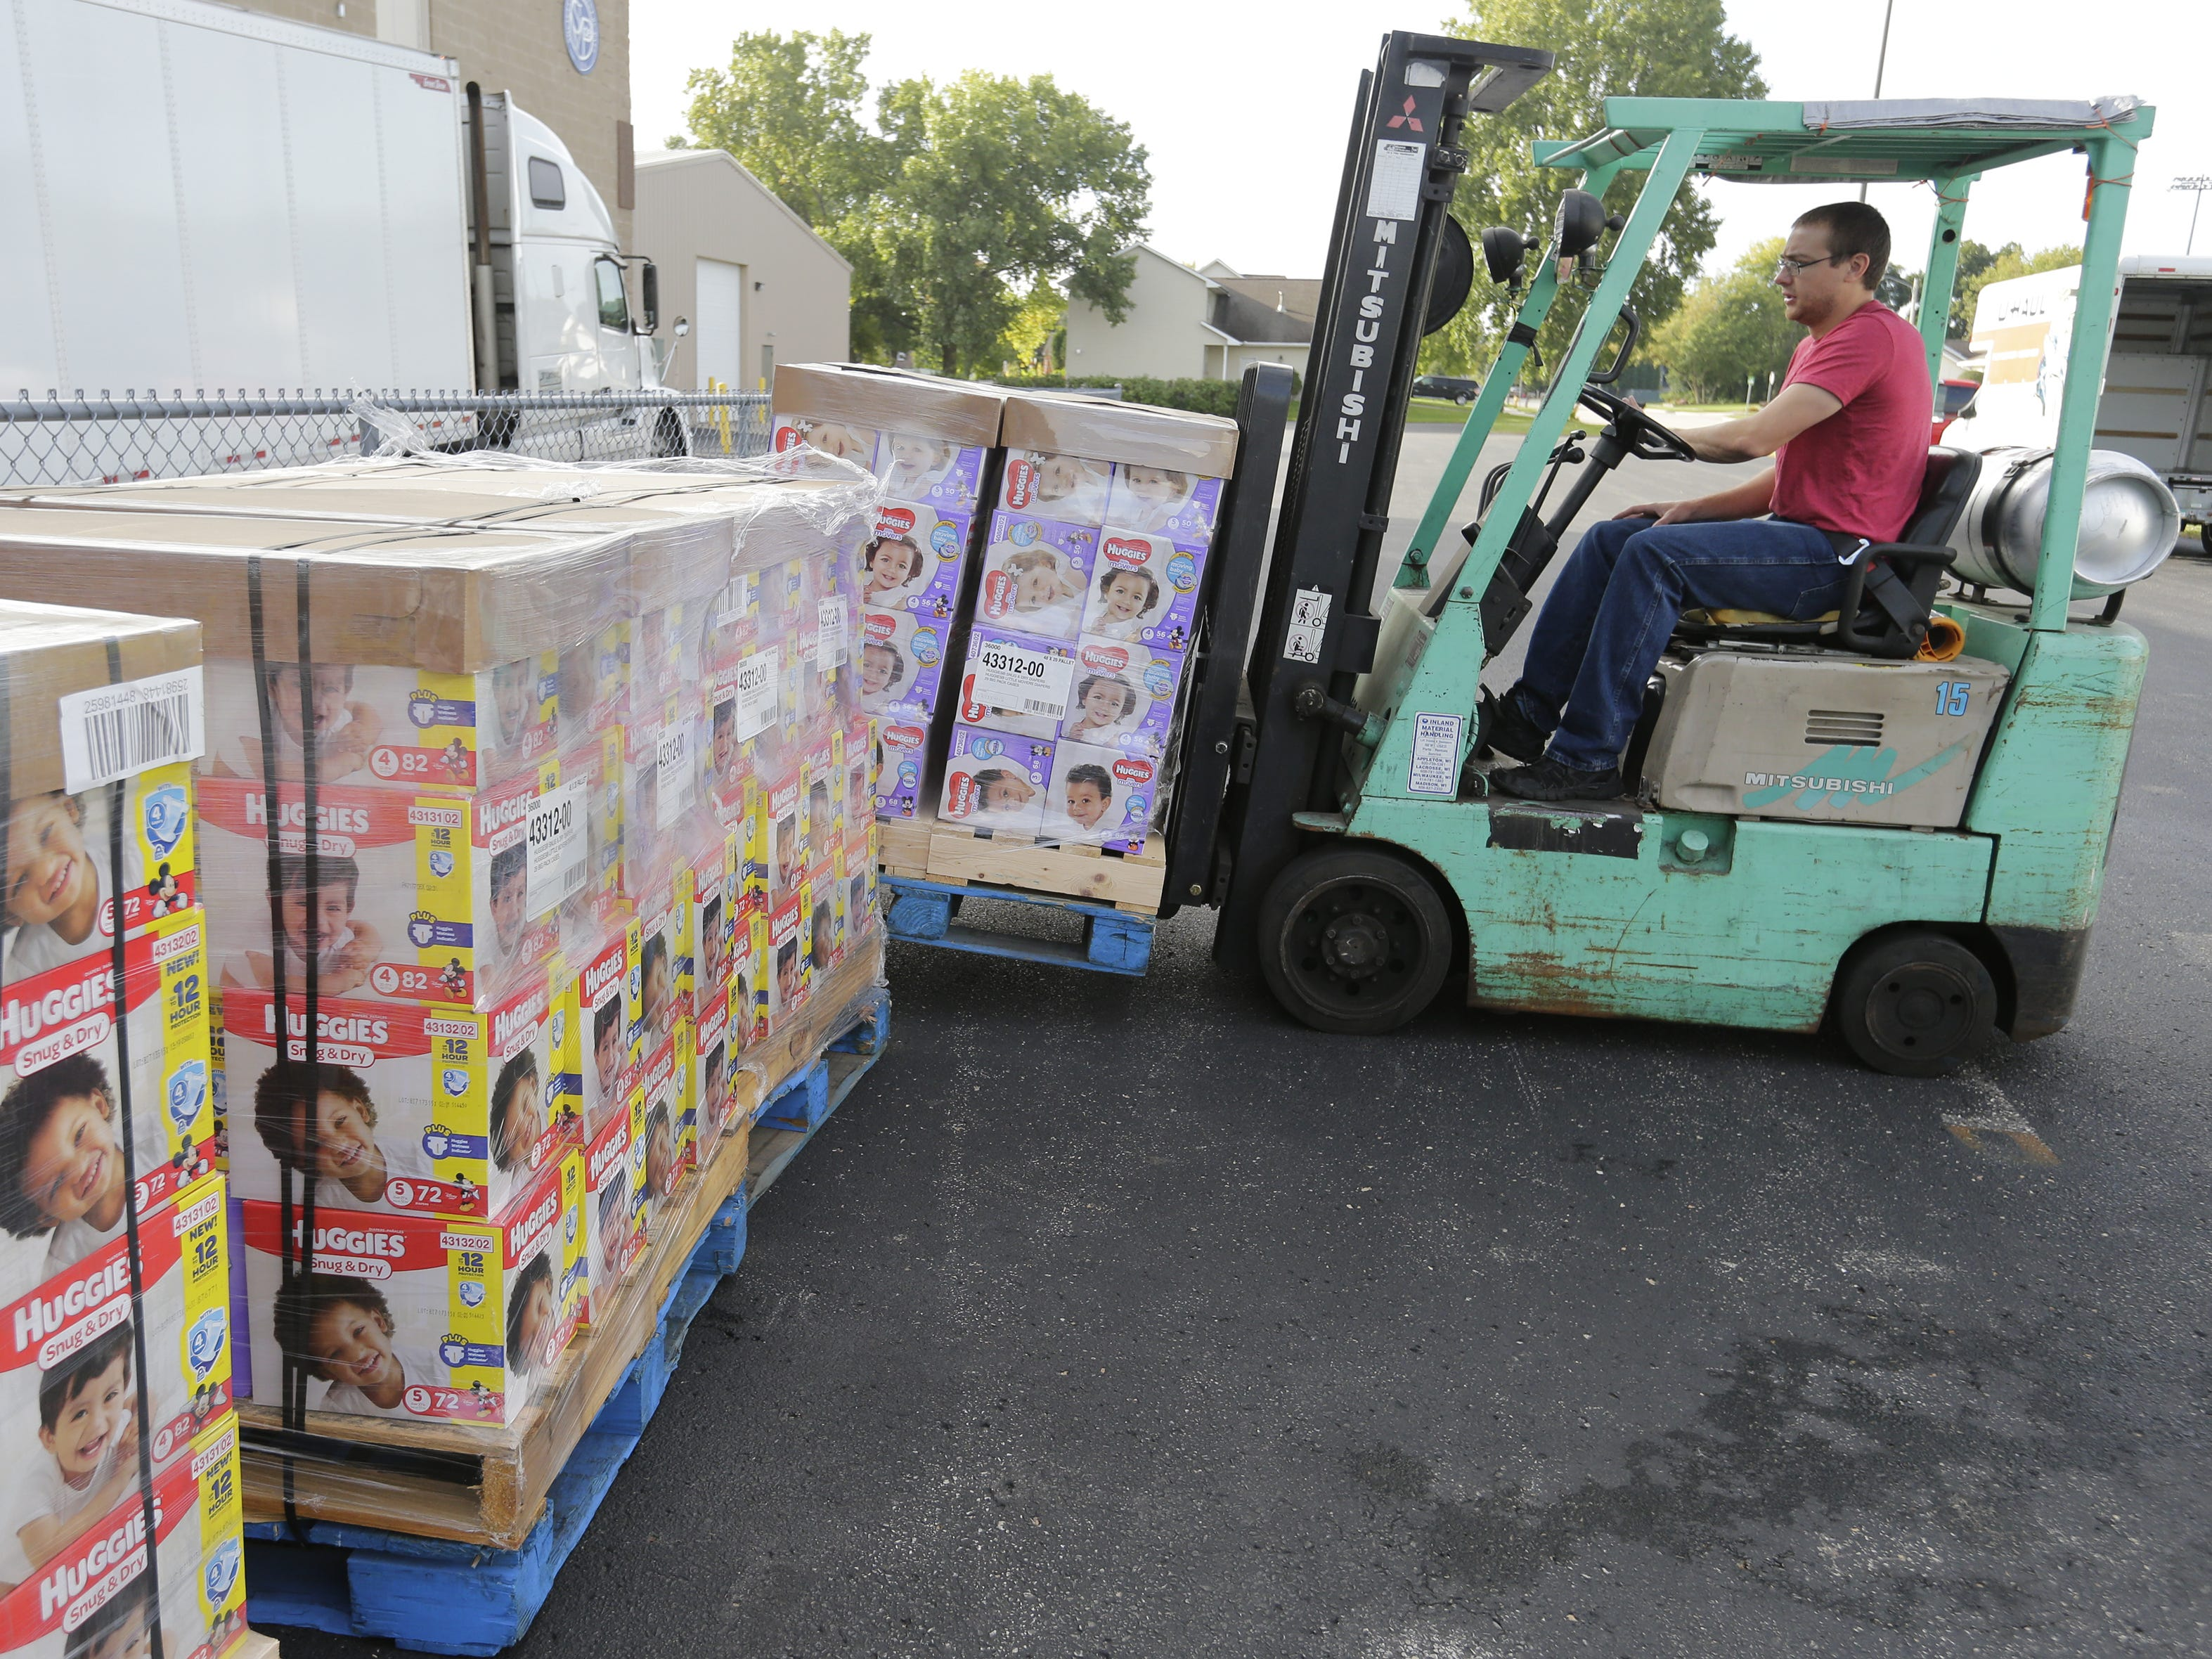 Brandon Wittman of the Oshkosh Area Community Food Pantry positions pallets of diapers for distribution Monday, Sept. 24, 2018, in Oshkosh. USA TODAY NETWORK-Wisconsin and Kimberly-Clark Corp. donated 100,400 diapers to nine food pantries in the area.